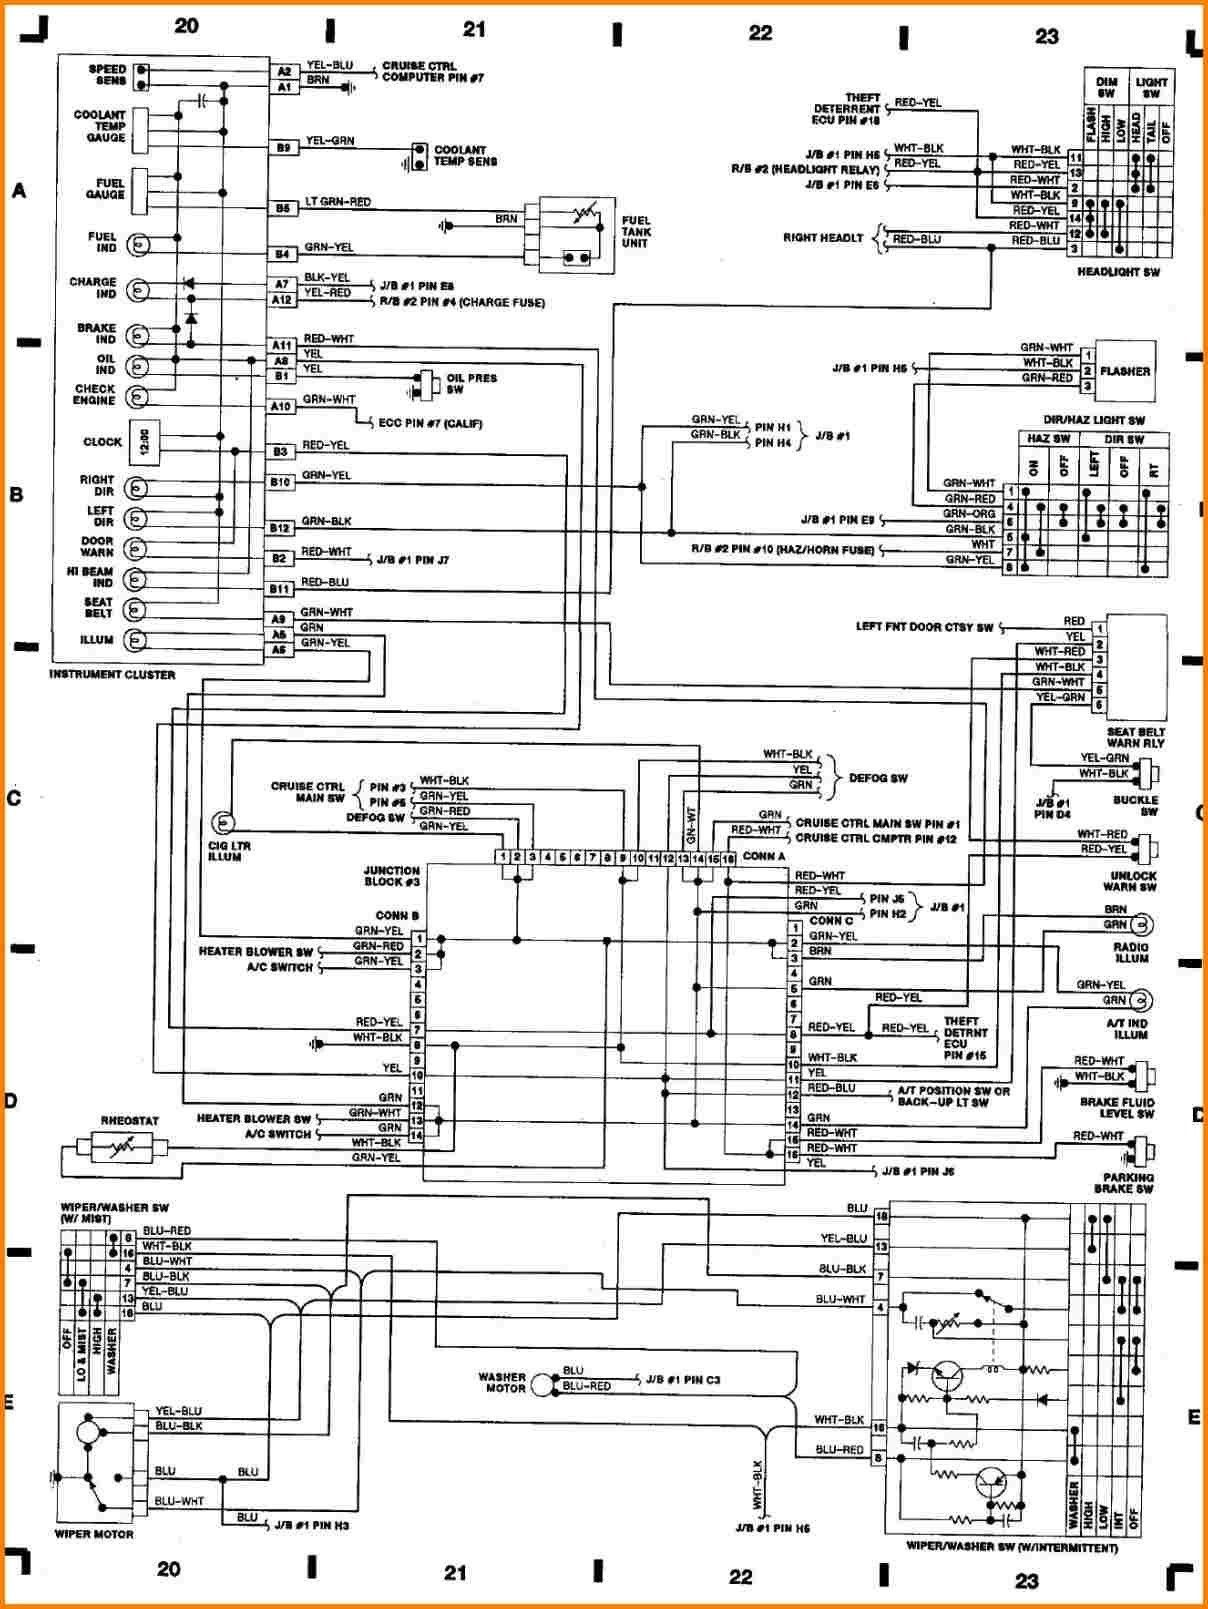 Wiring Diagram For 2002 Toyota Tacoma In 2021 Electrical Wiring Diagram House Wiring Circuit Diagram